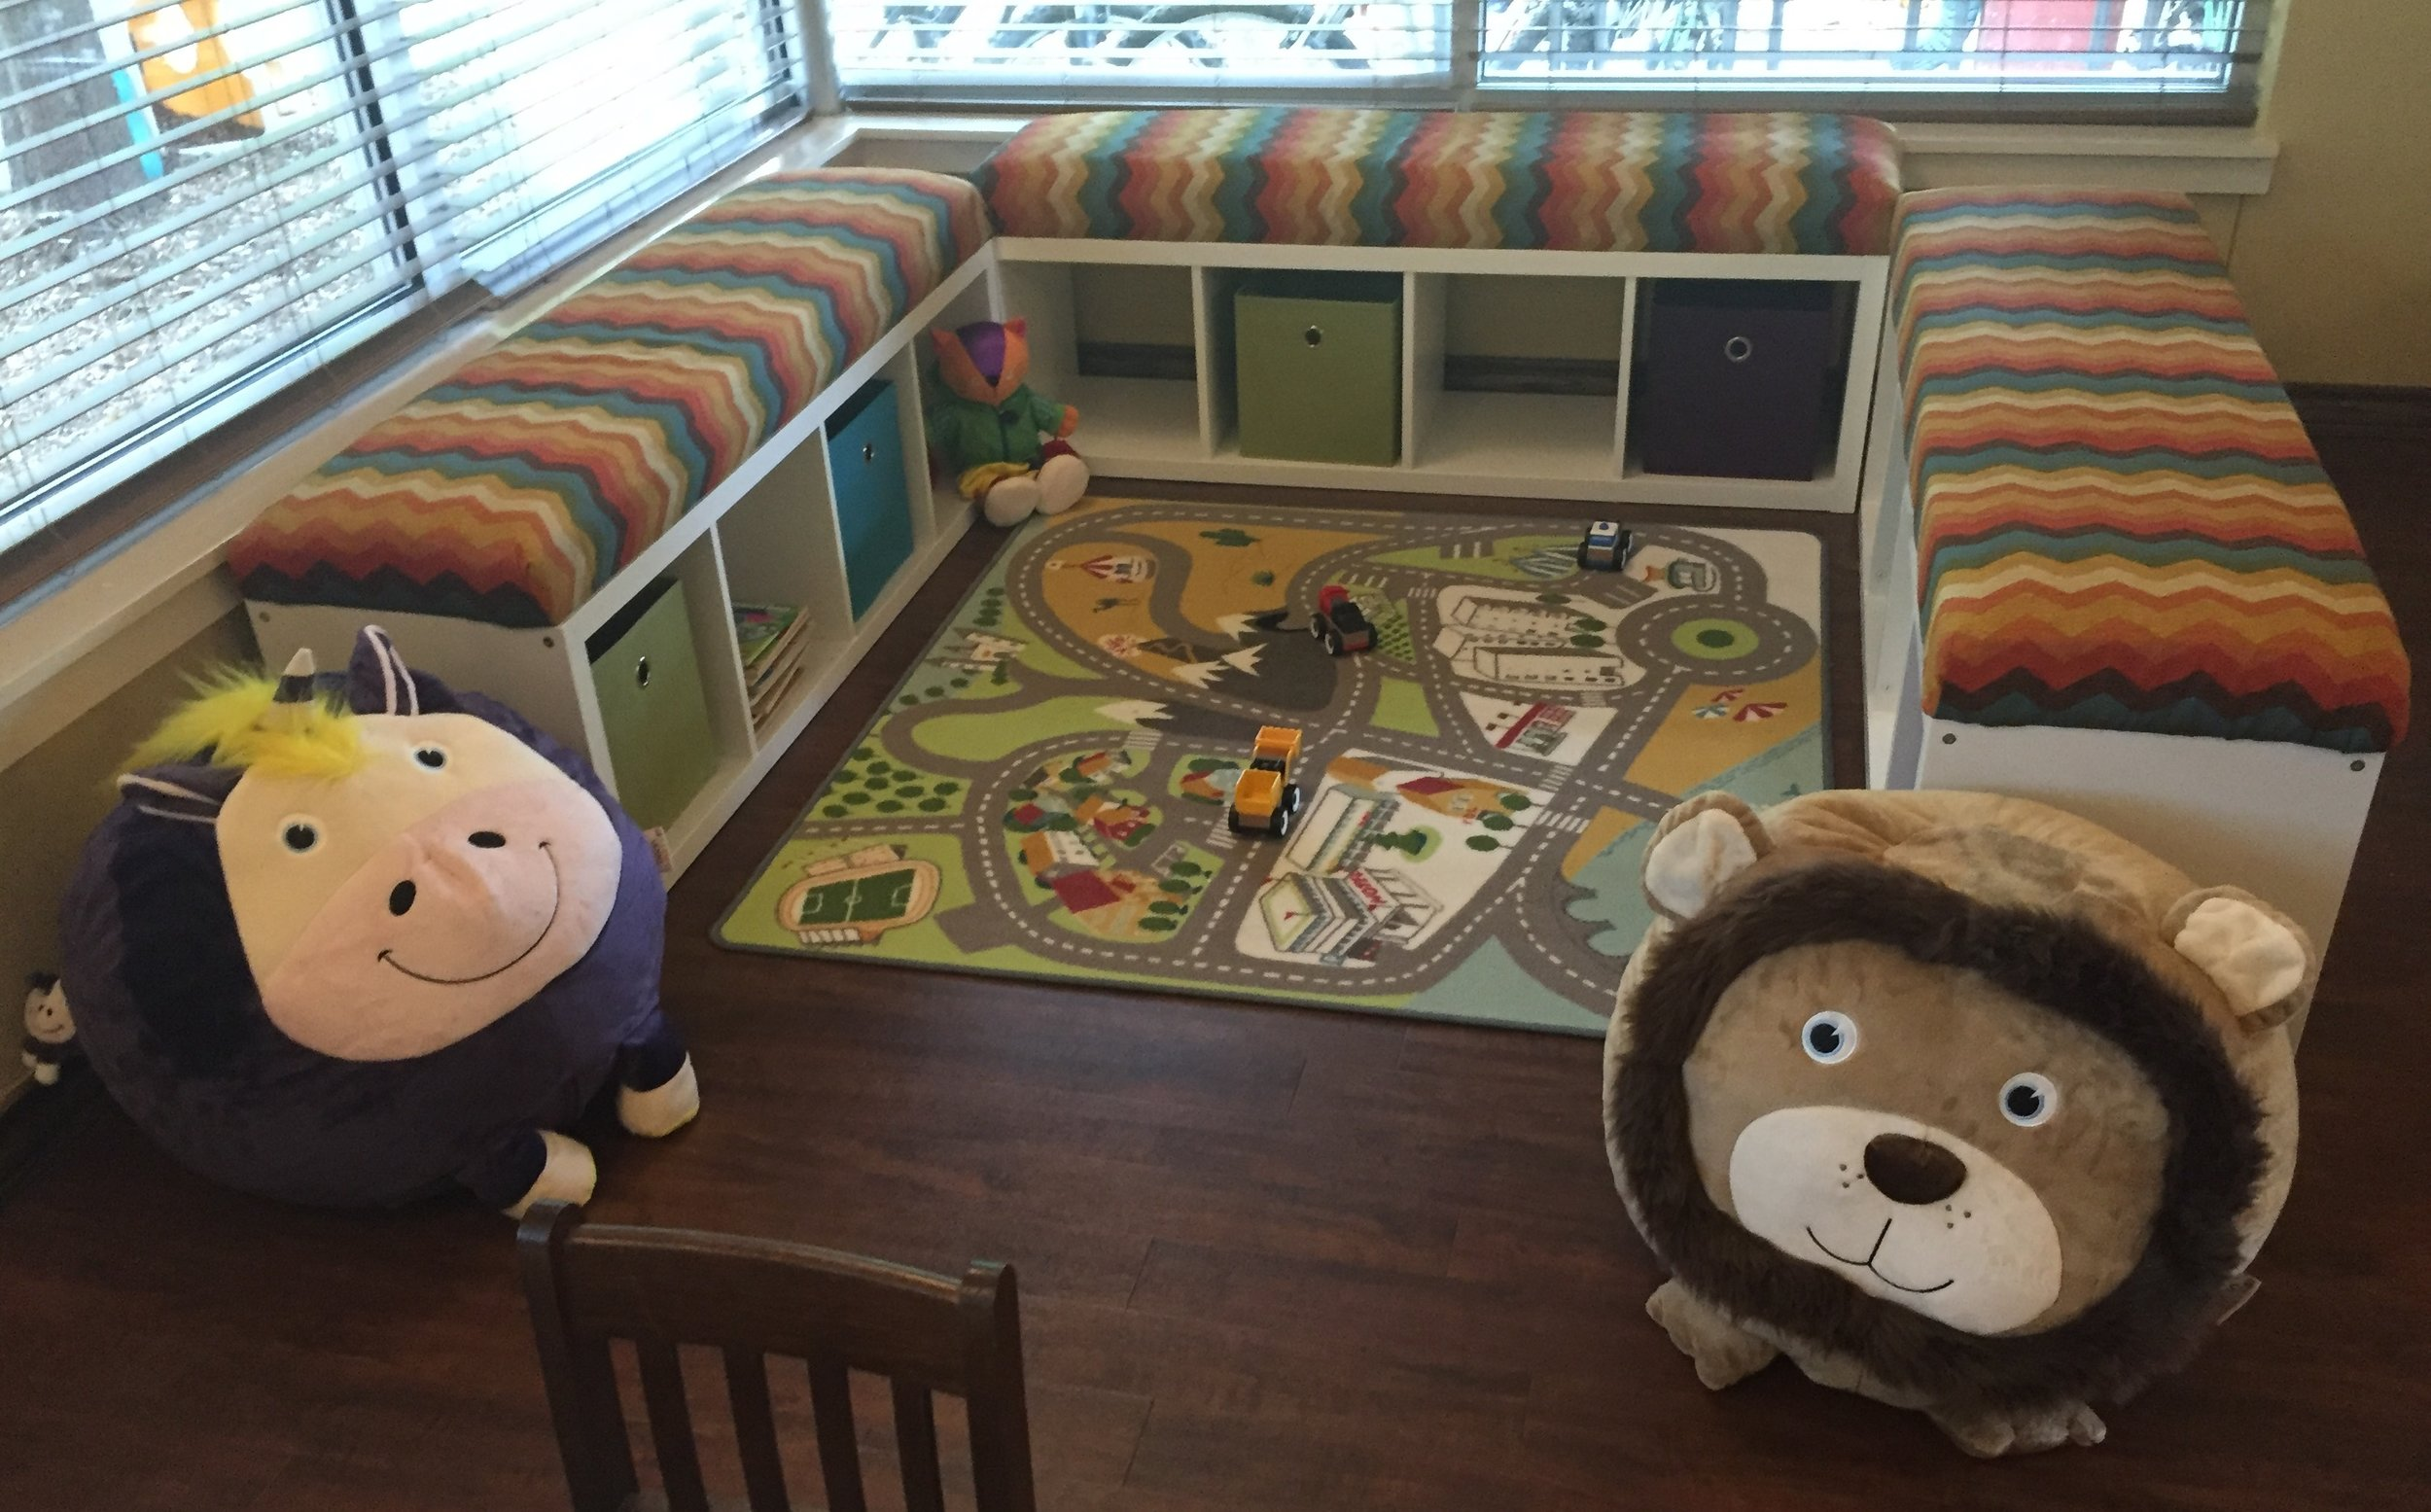 The game and reading corner is now a comfortable place for kids to relax.